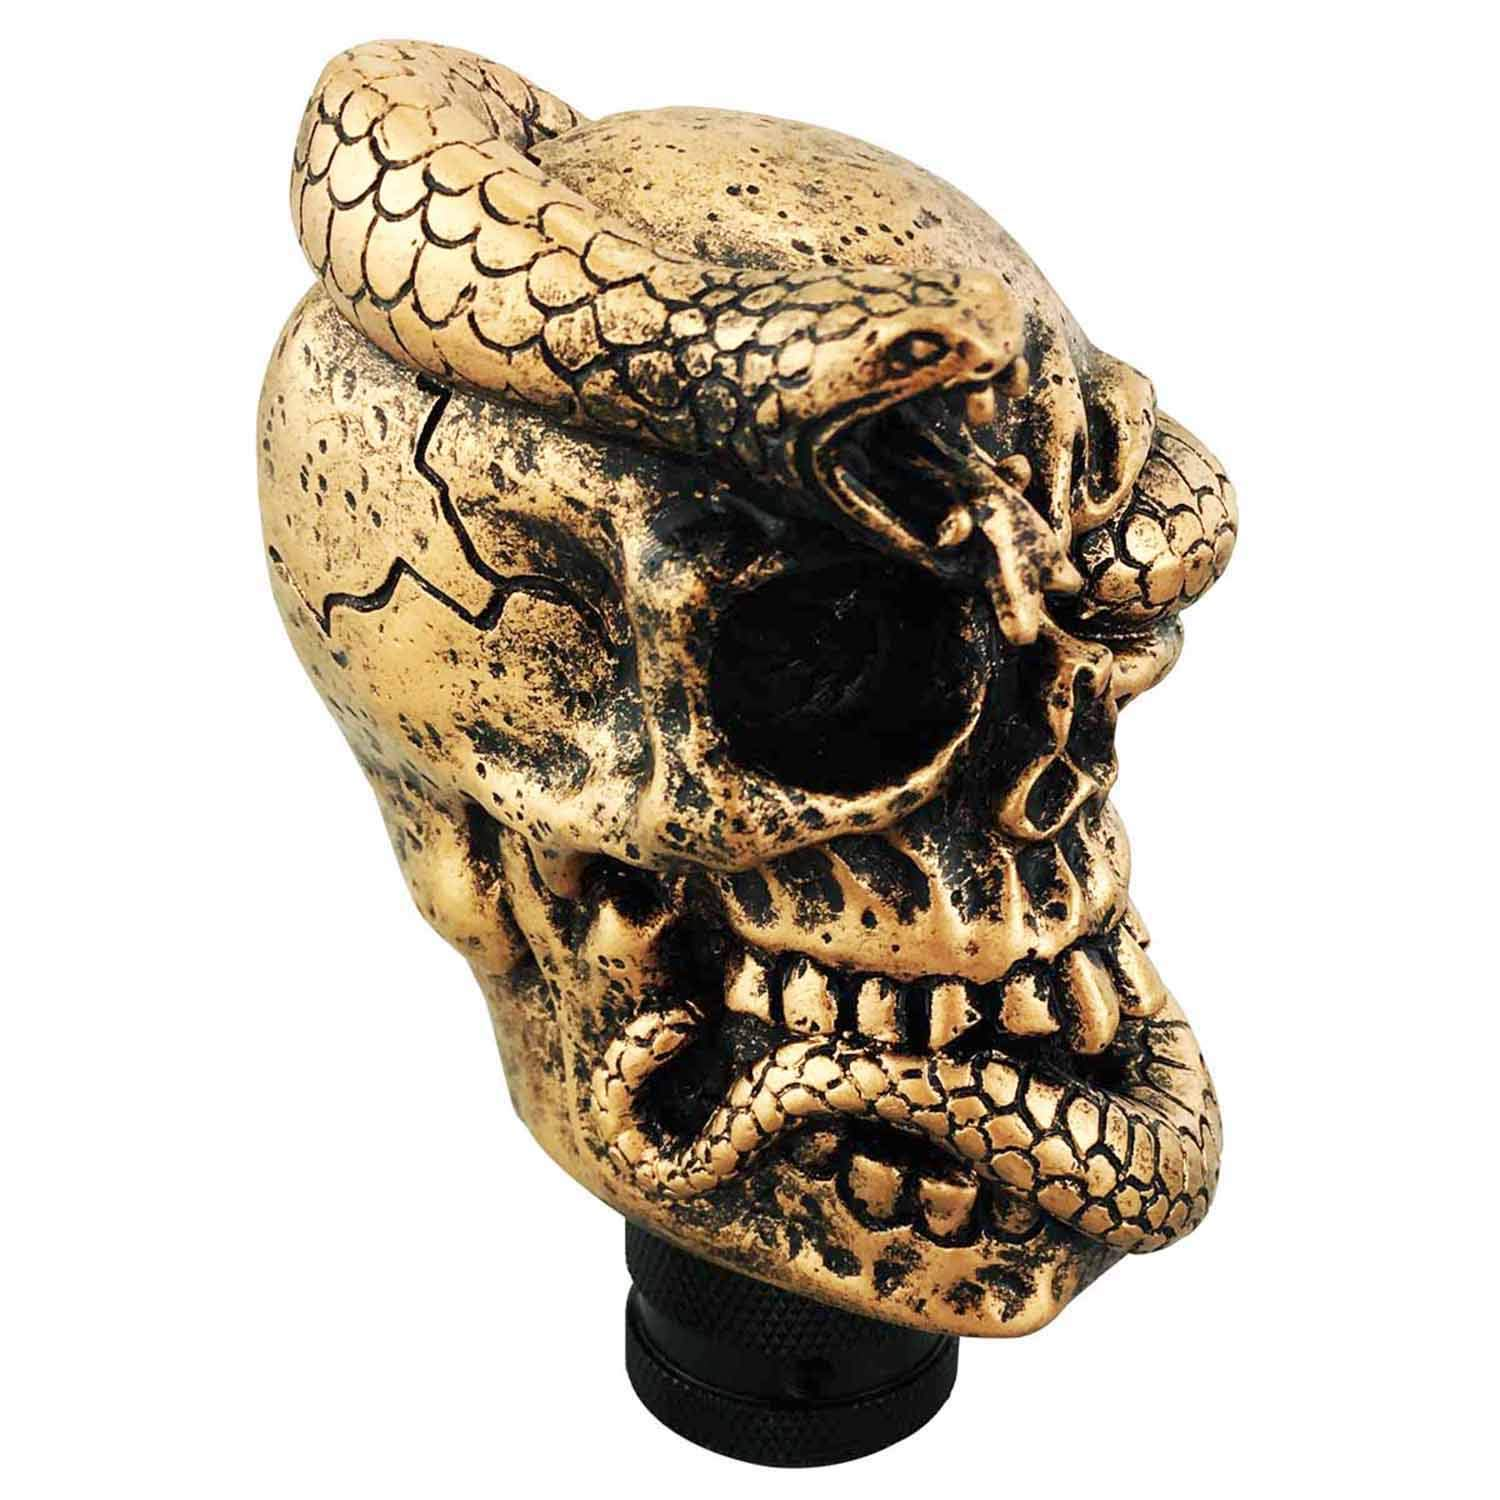 Black Abfer Car Shift Knob Cool Skull Gear Stick Shifter Knobs Fit Most Universal Automatic Vehicle